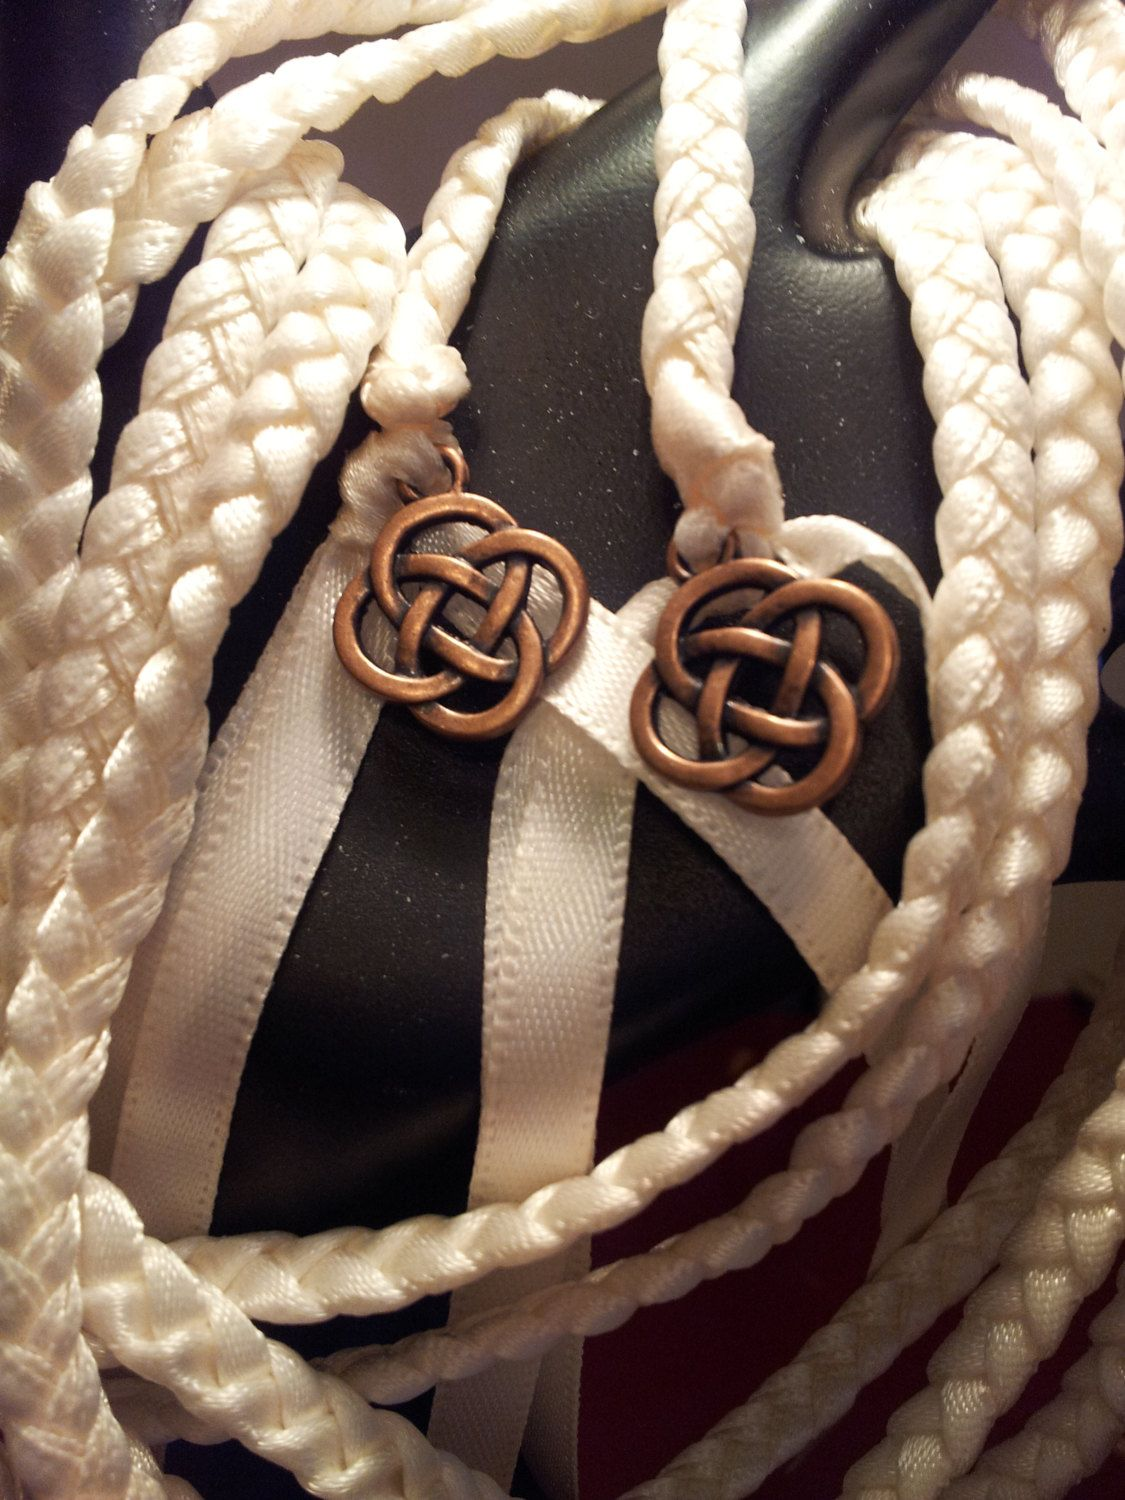 Ivory Celtic Knot Wedding Hand Fasting Binding Cord By Divinitybraid On Etsy